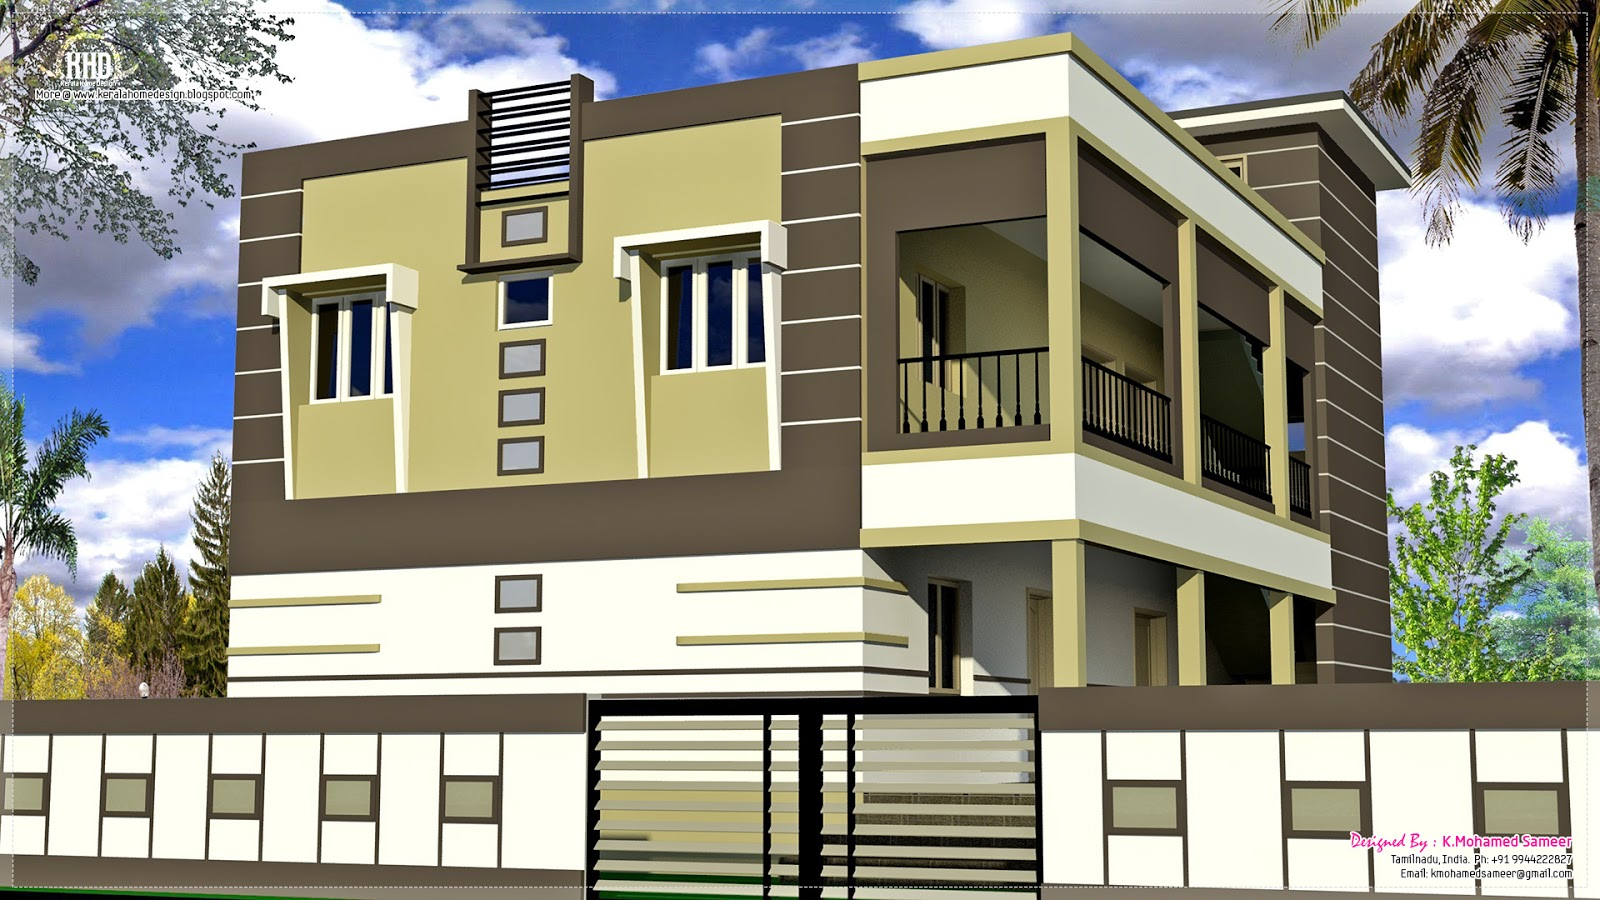 Front Elevation Designs For Two Floor Houses : South indian house exterior designs kerala home design